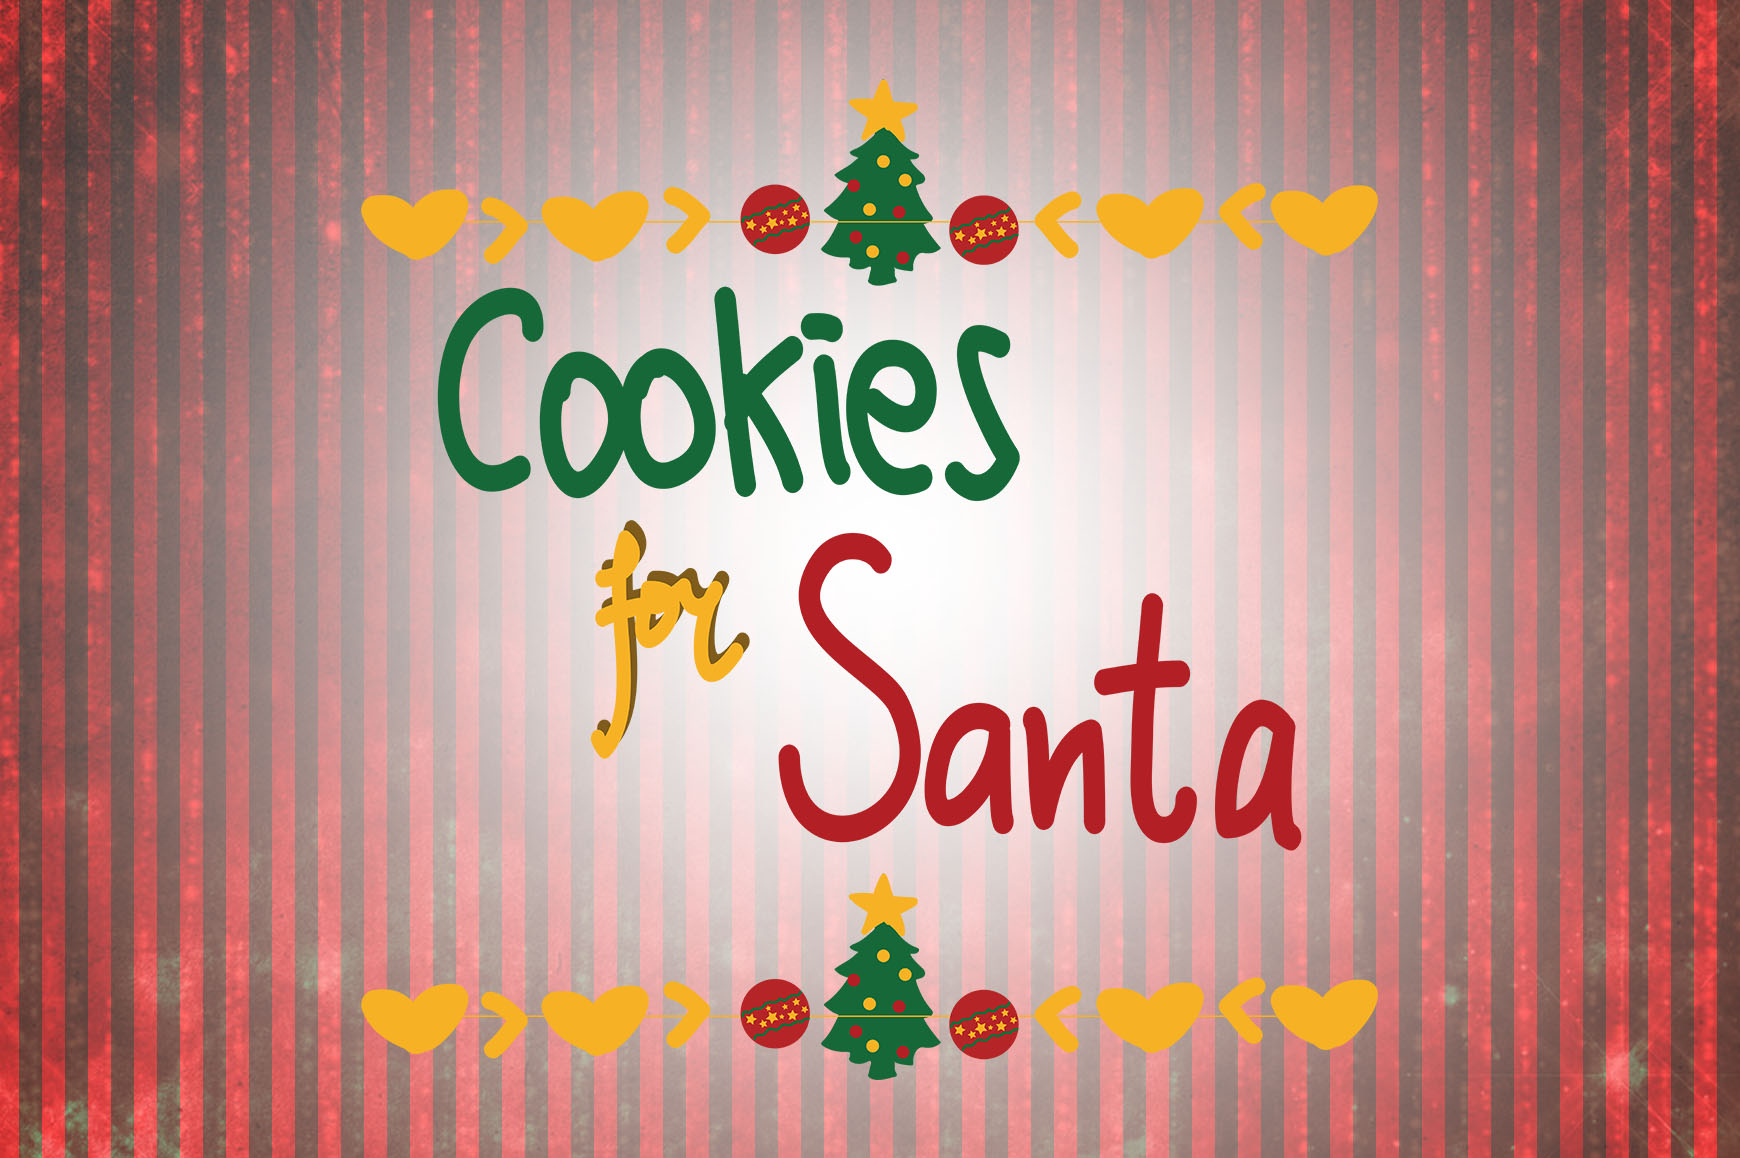 Download Free Cookies For Santa Christmas Quotes Graphic By Wienscollection for Cricut Explore, Silhouette and other cutting machines.